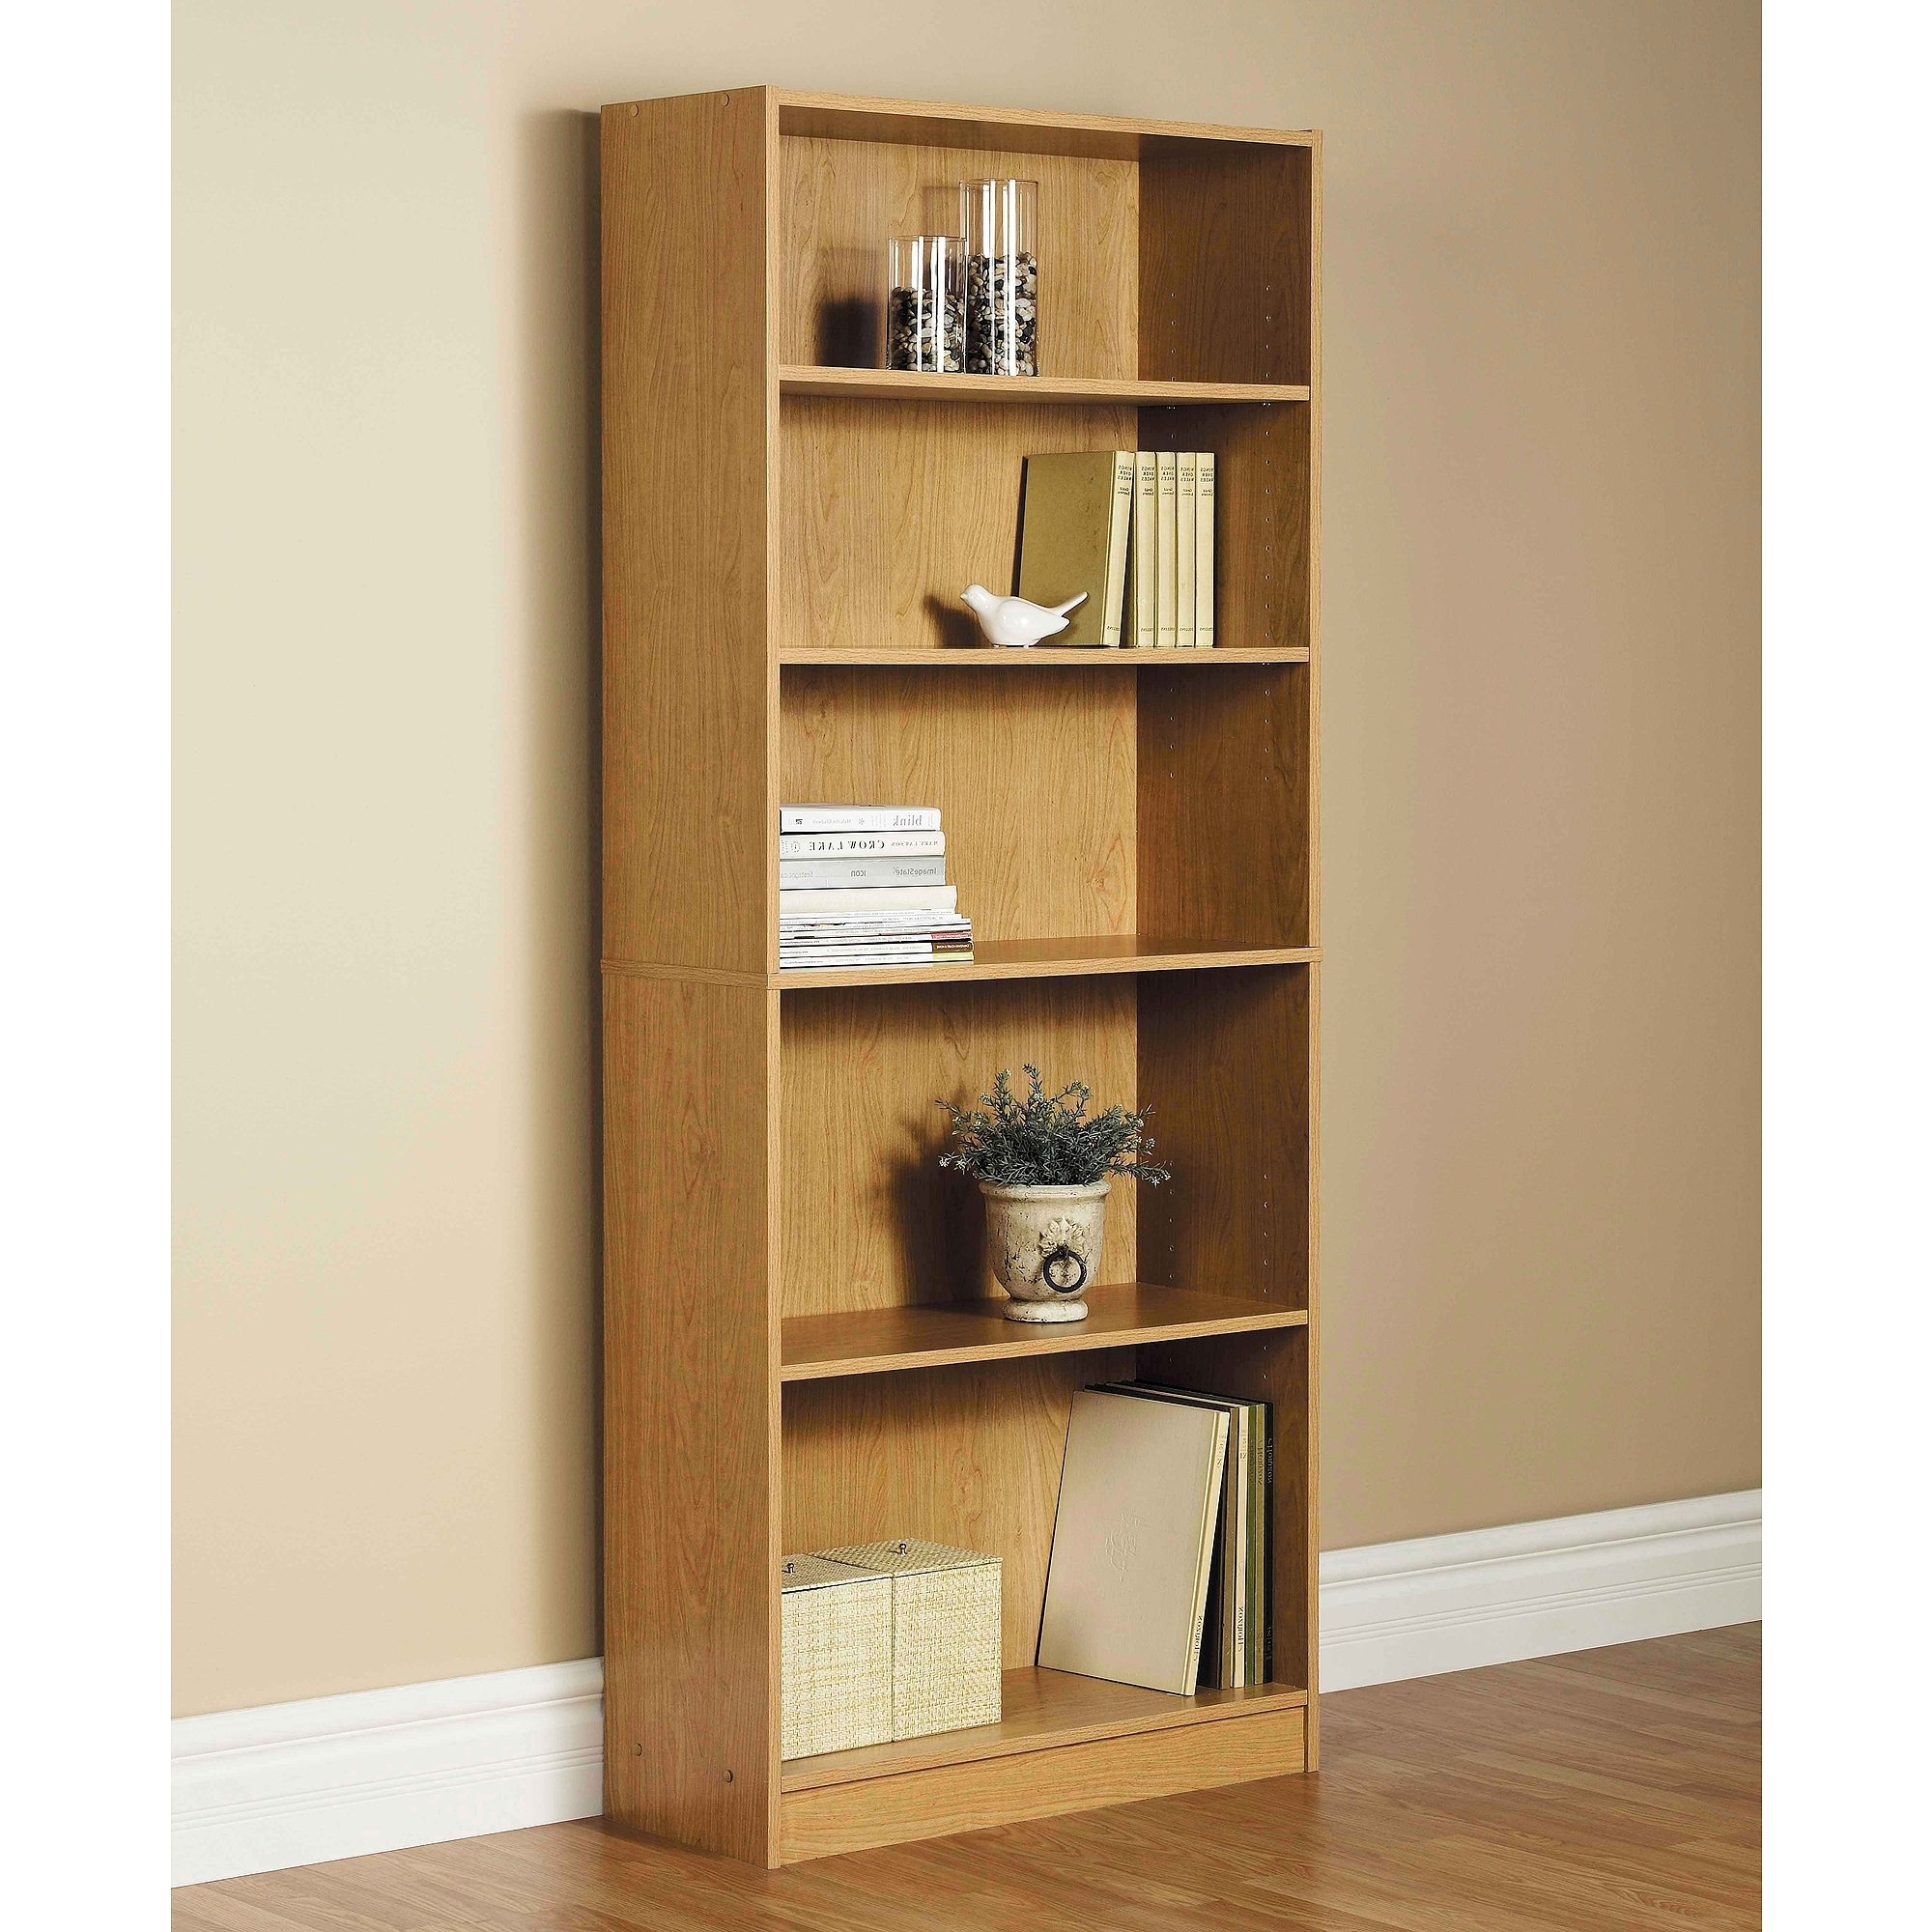 Most Recent Walmart Bookcases Within Orion Wide 5 Shelf Bookcase, Set Of 2, (mix And Match) – Walmart (View 3 of 15)